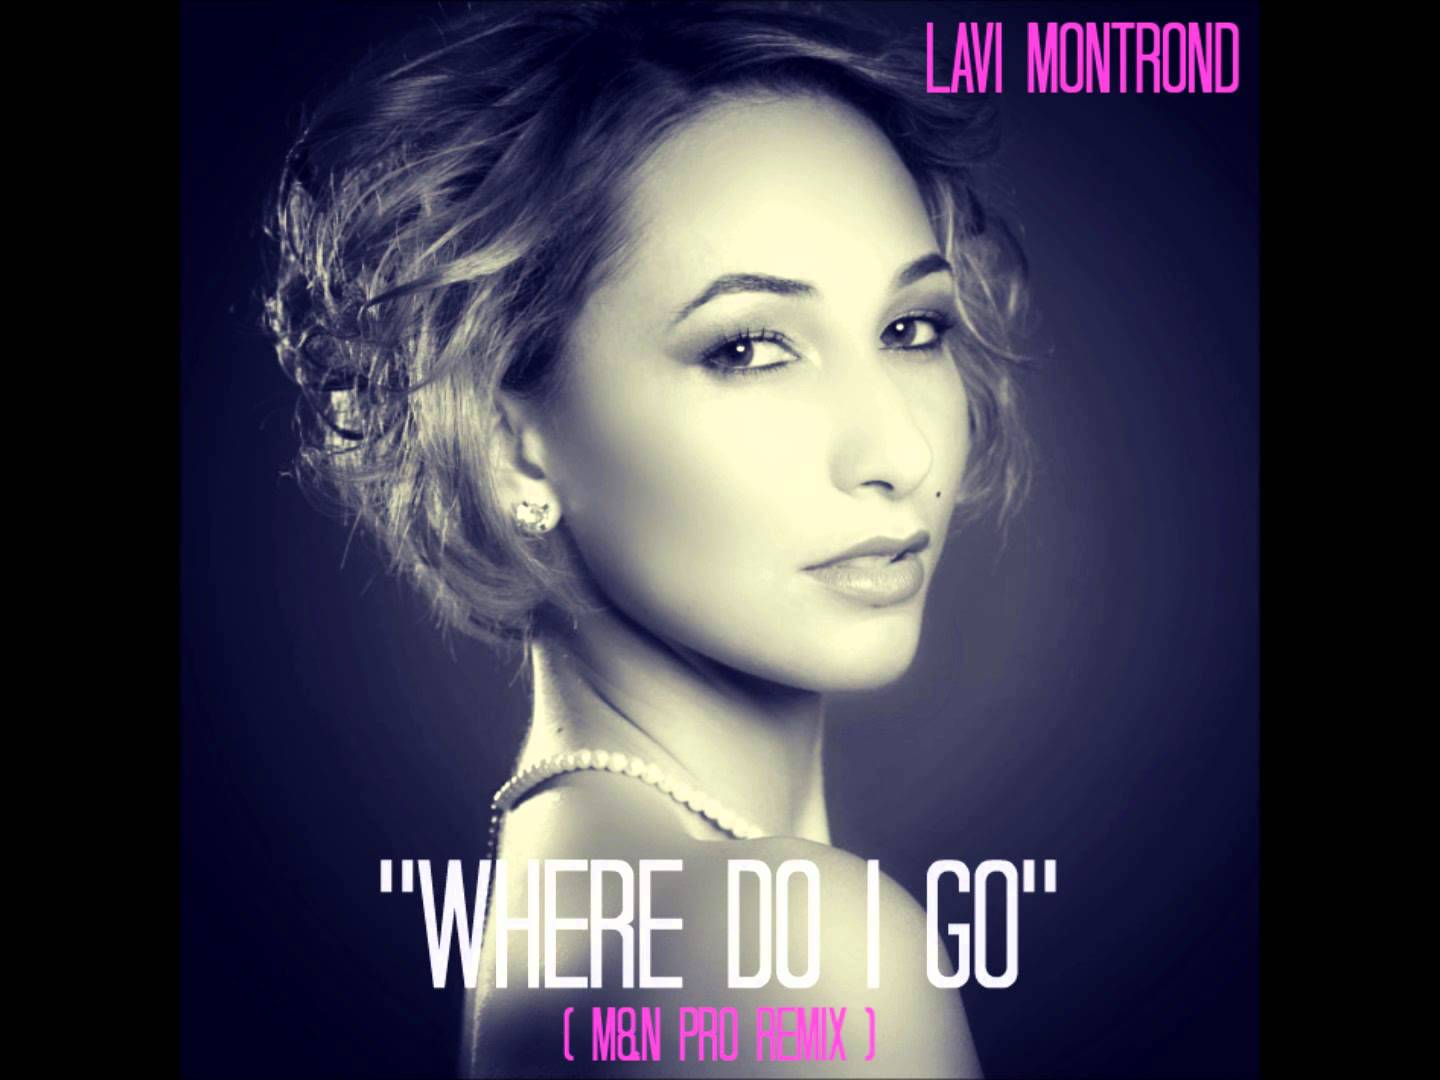 Lavi Montrond – Where Do I Go [M&N Pro Remix] (kizomba)